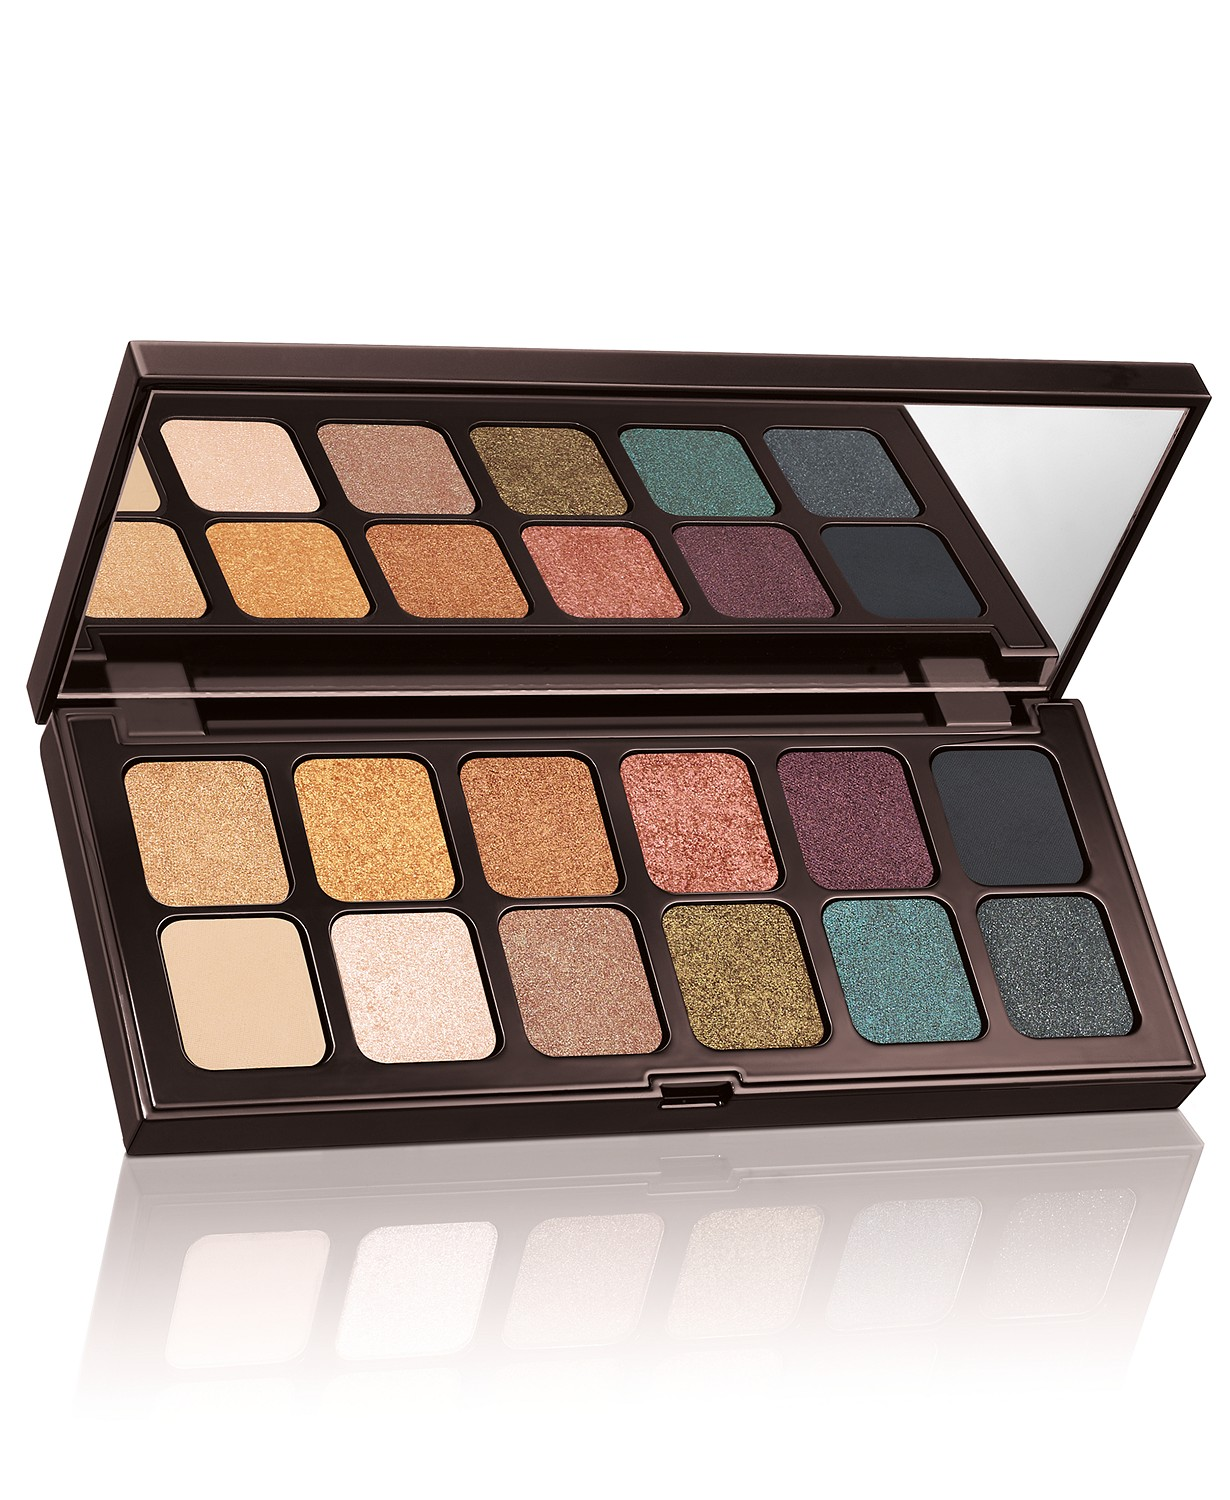 (50% OFF Deal) Laura Mercier Hidden Gems Palette $27.50